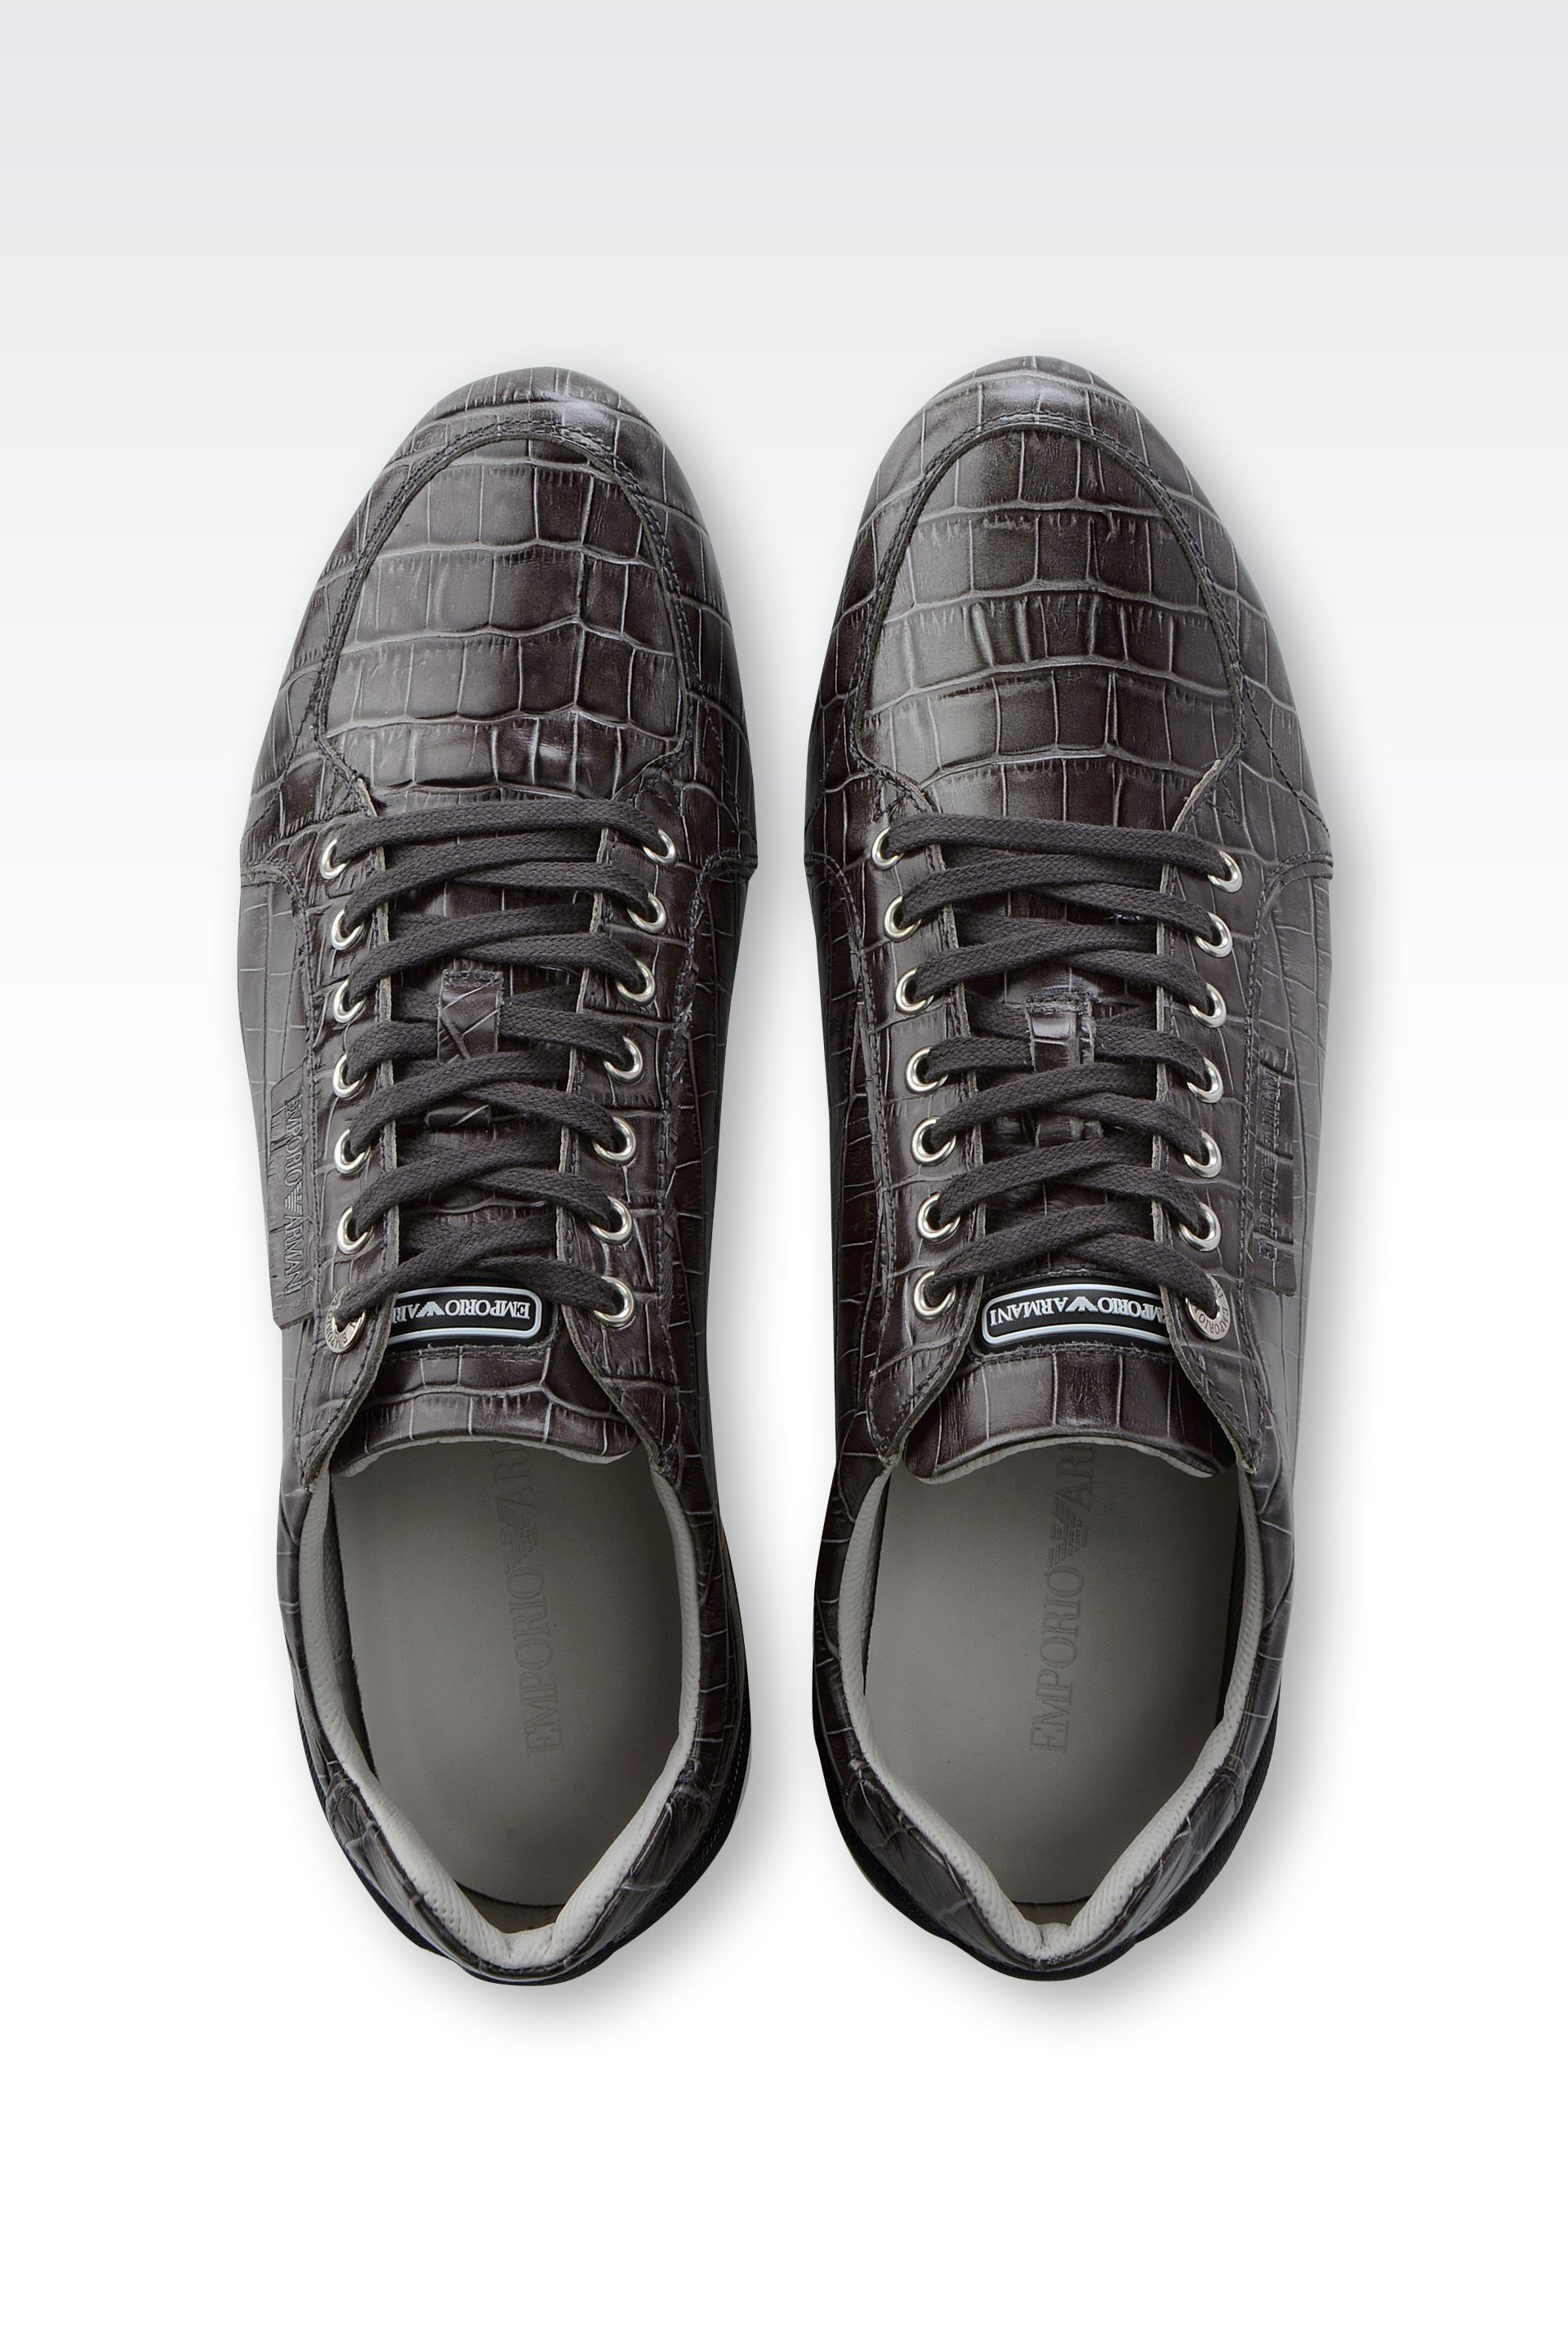 4bce42245b Emporio Armani Gray Leather Sneakers with Croc Print for men